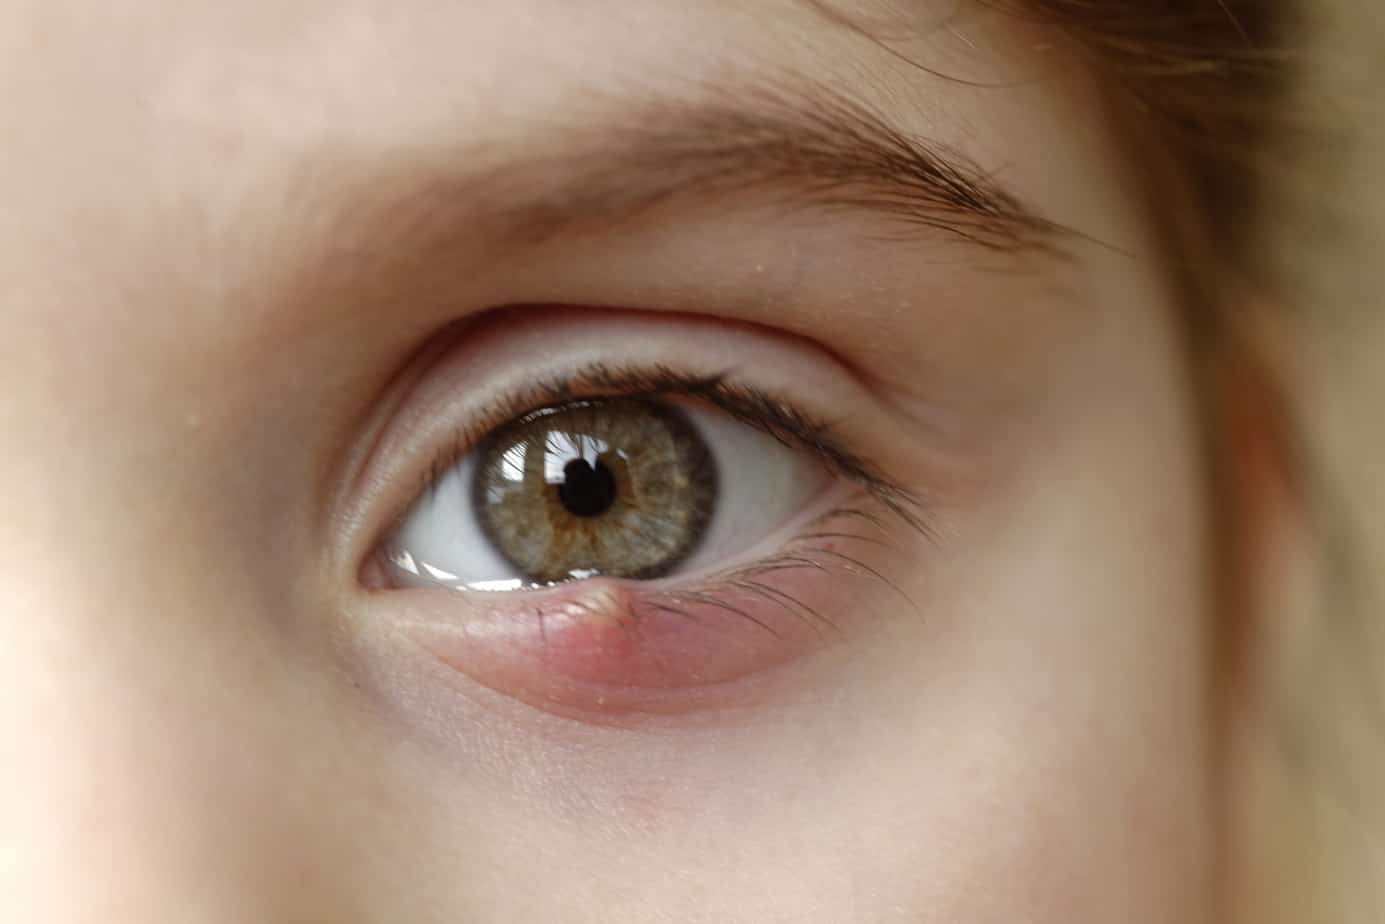 Close-up of a child's eye